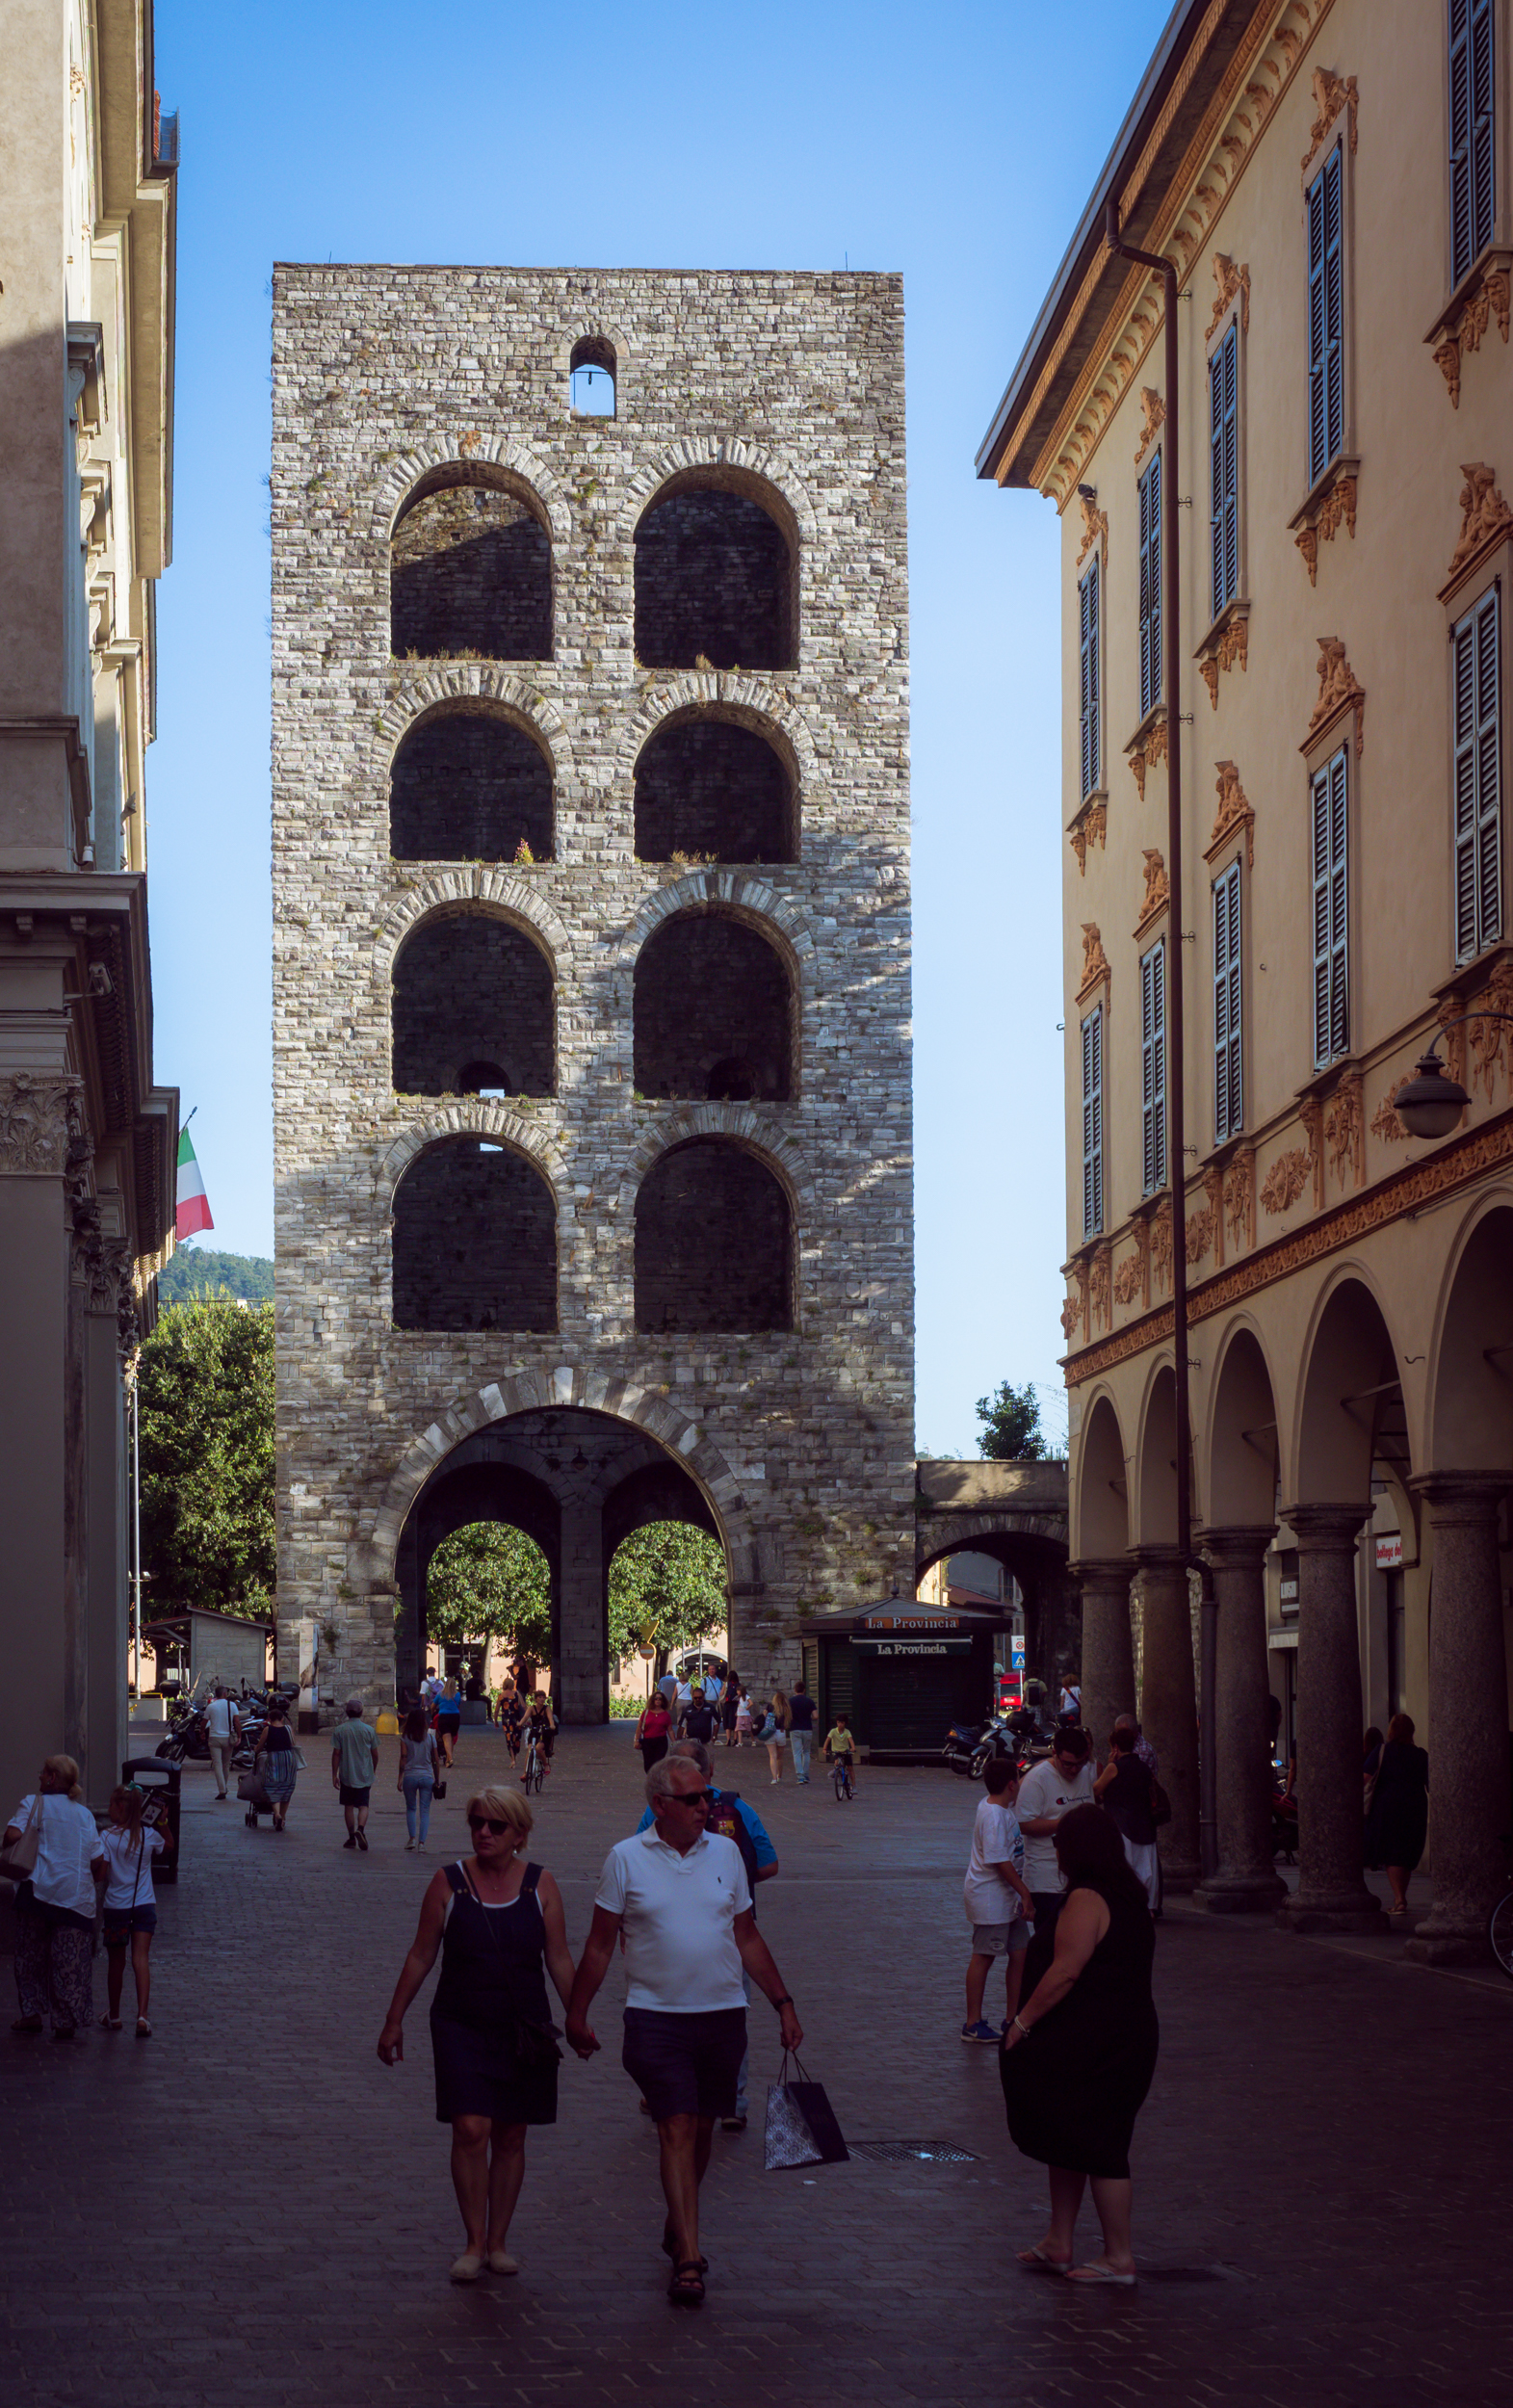 The Como Gate Tower